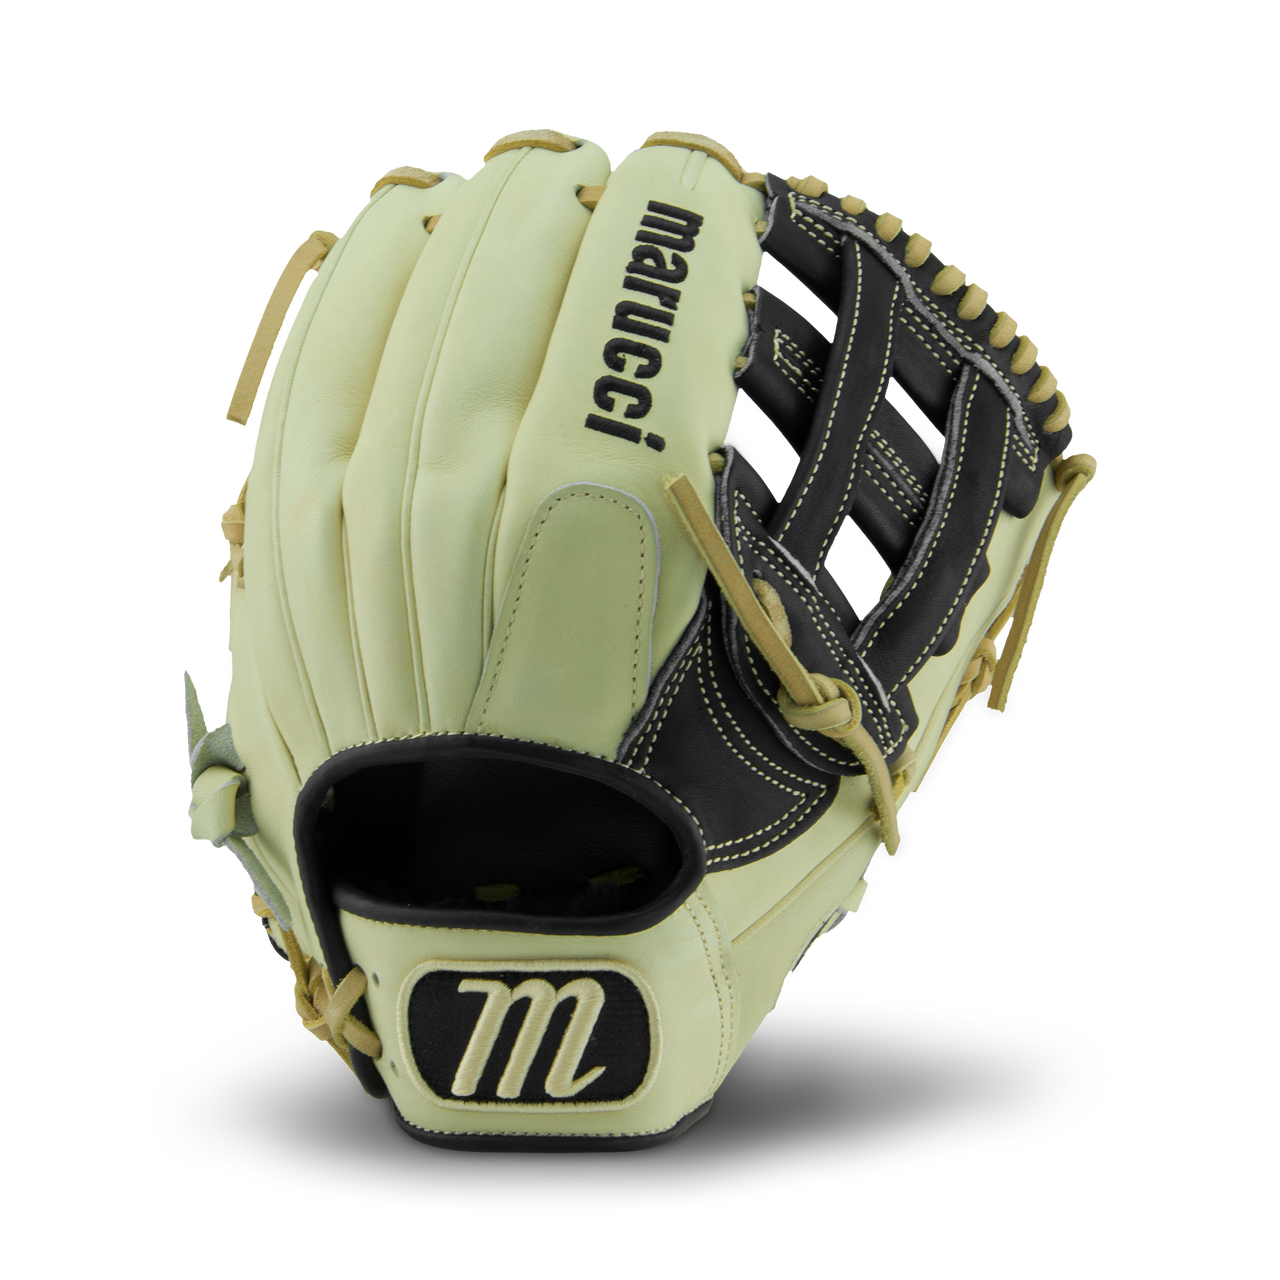 marucci-founders-11-5-h-web-baseball-glove-right-hand-throw MFGFS1150H-RightHandThrow Marucci 849817055984 Constructed with premium Japanese kip leather and an understanding of the